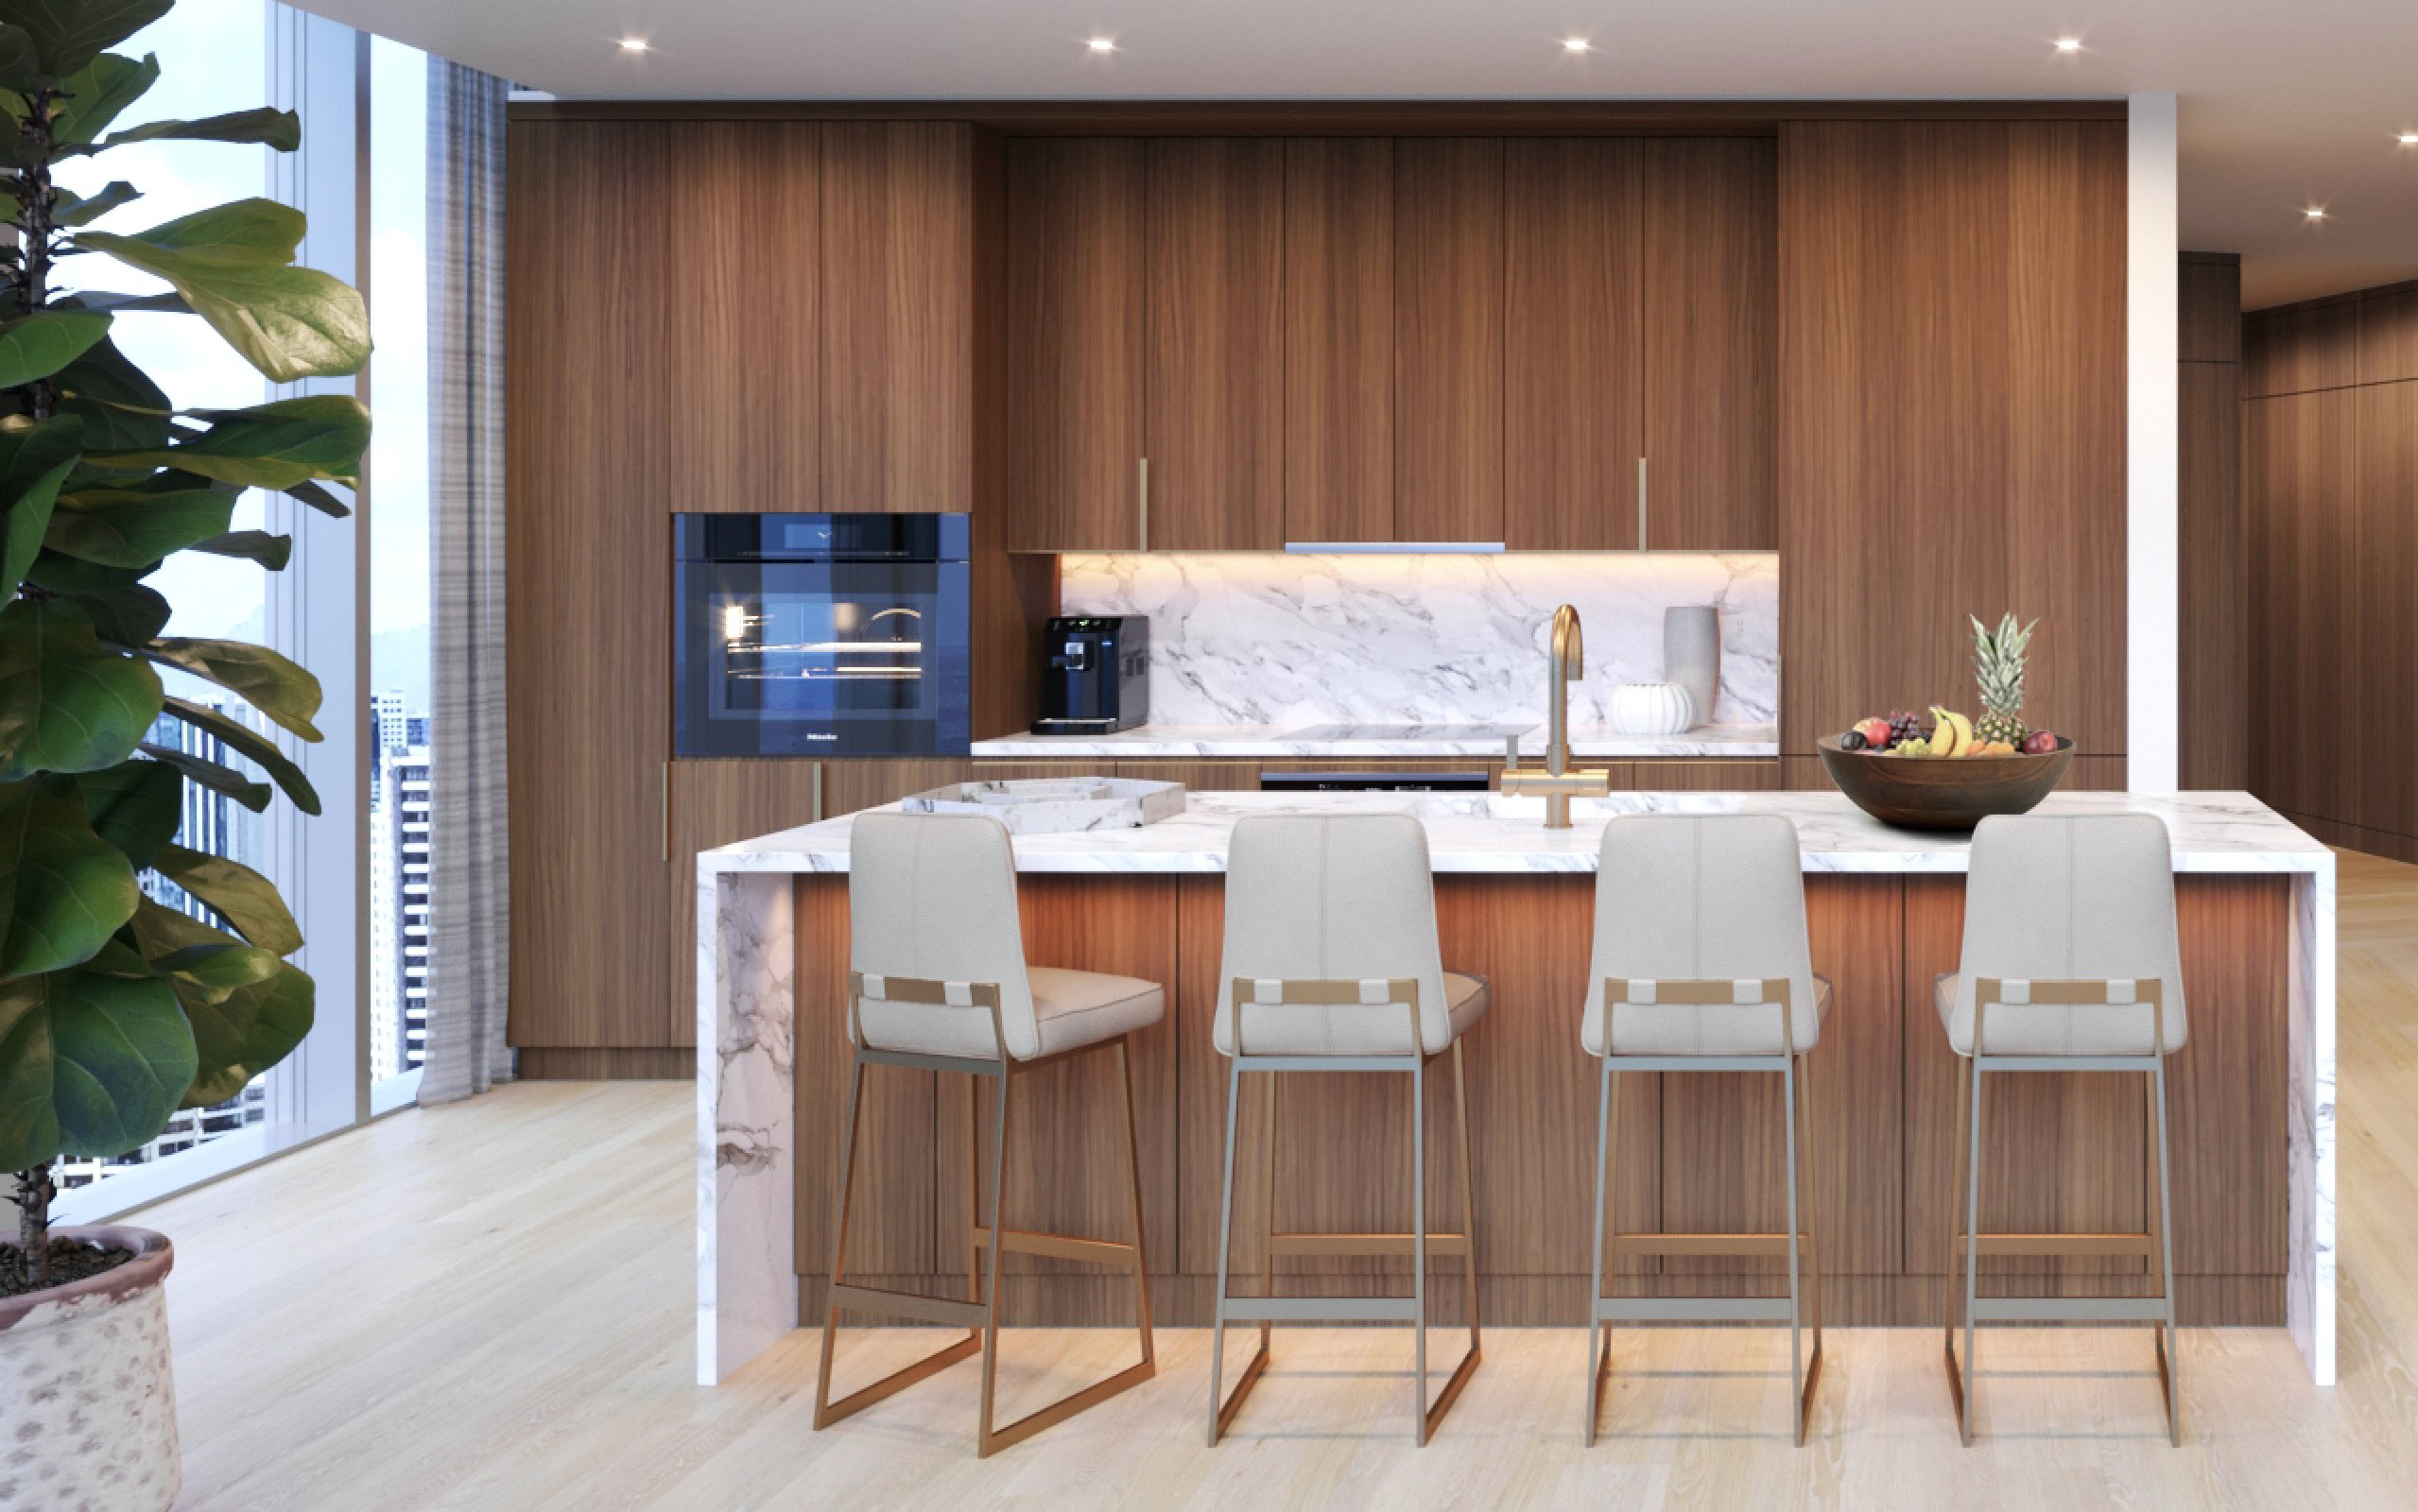 Construction will soon begin on this brand new Penthouse at The Ritz-Carlton Residence Waikiki Beach. This single level Penthouse on ...